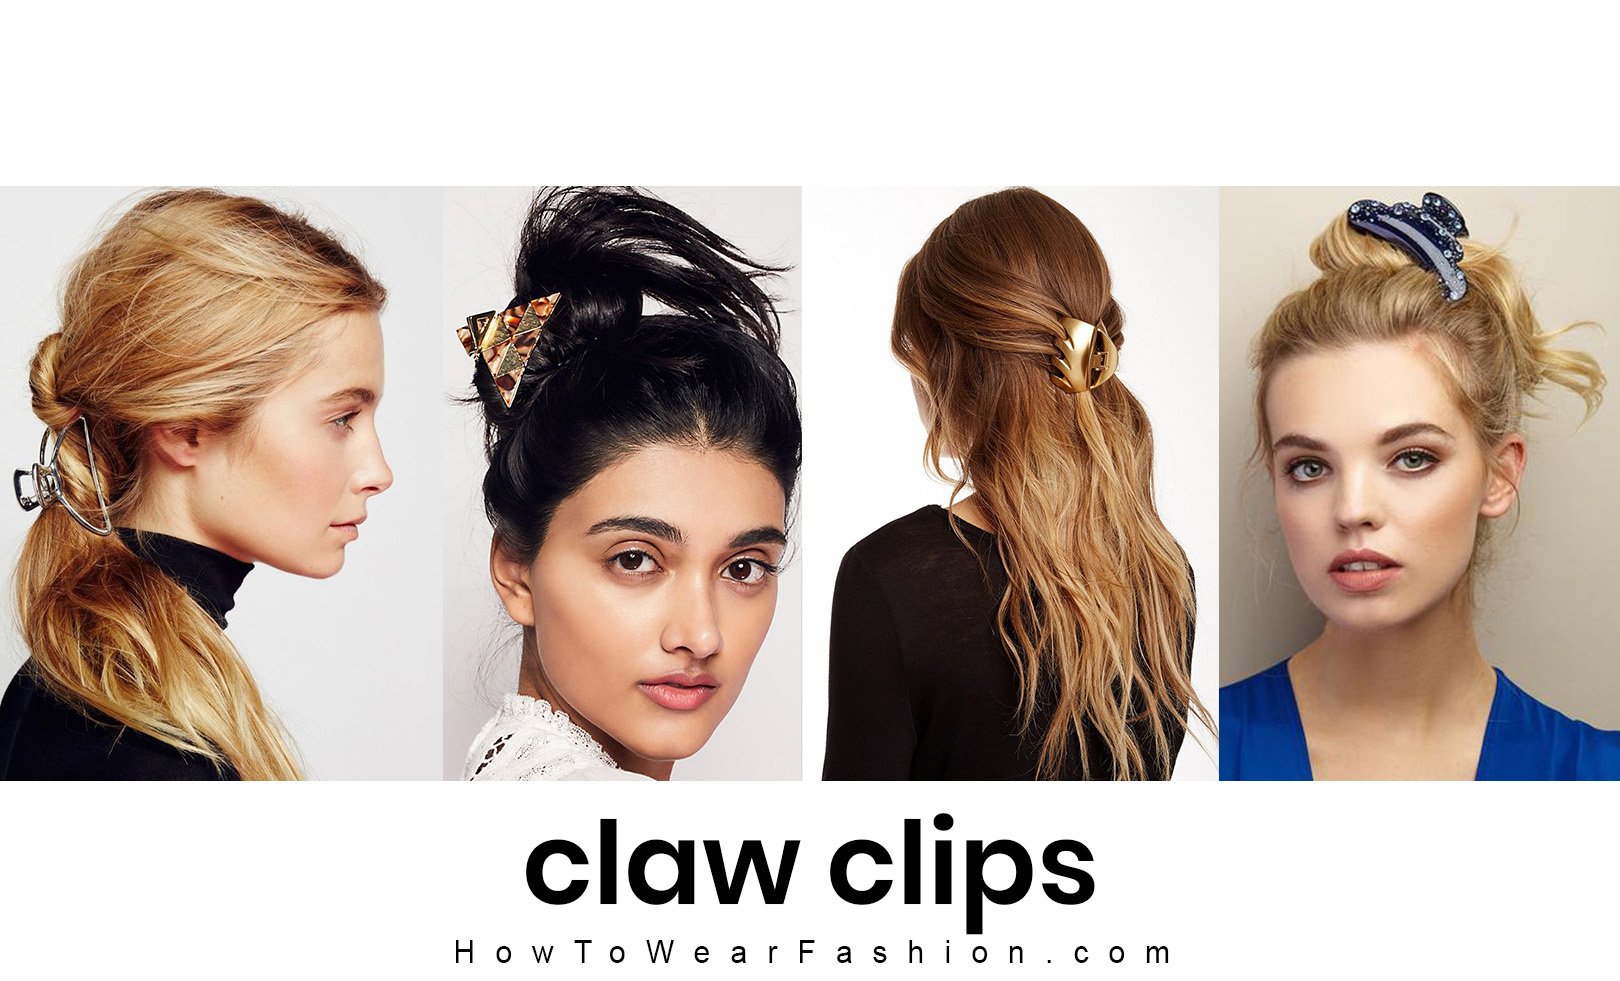 Claw clips have made a comeback - even mini ones! See how to wear the cute claw clip hair trend here! Use claw clips to hold twists or buns, accent an updo, or to make a half up look. It's easy to throw your hair up in one of these looks for everyday.